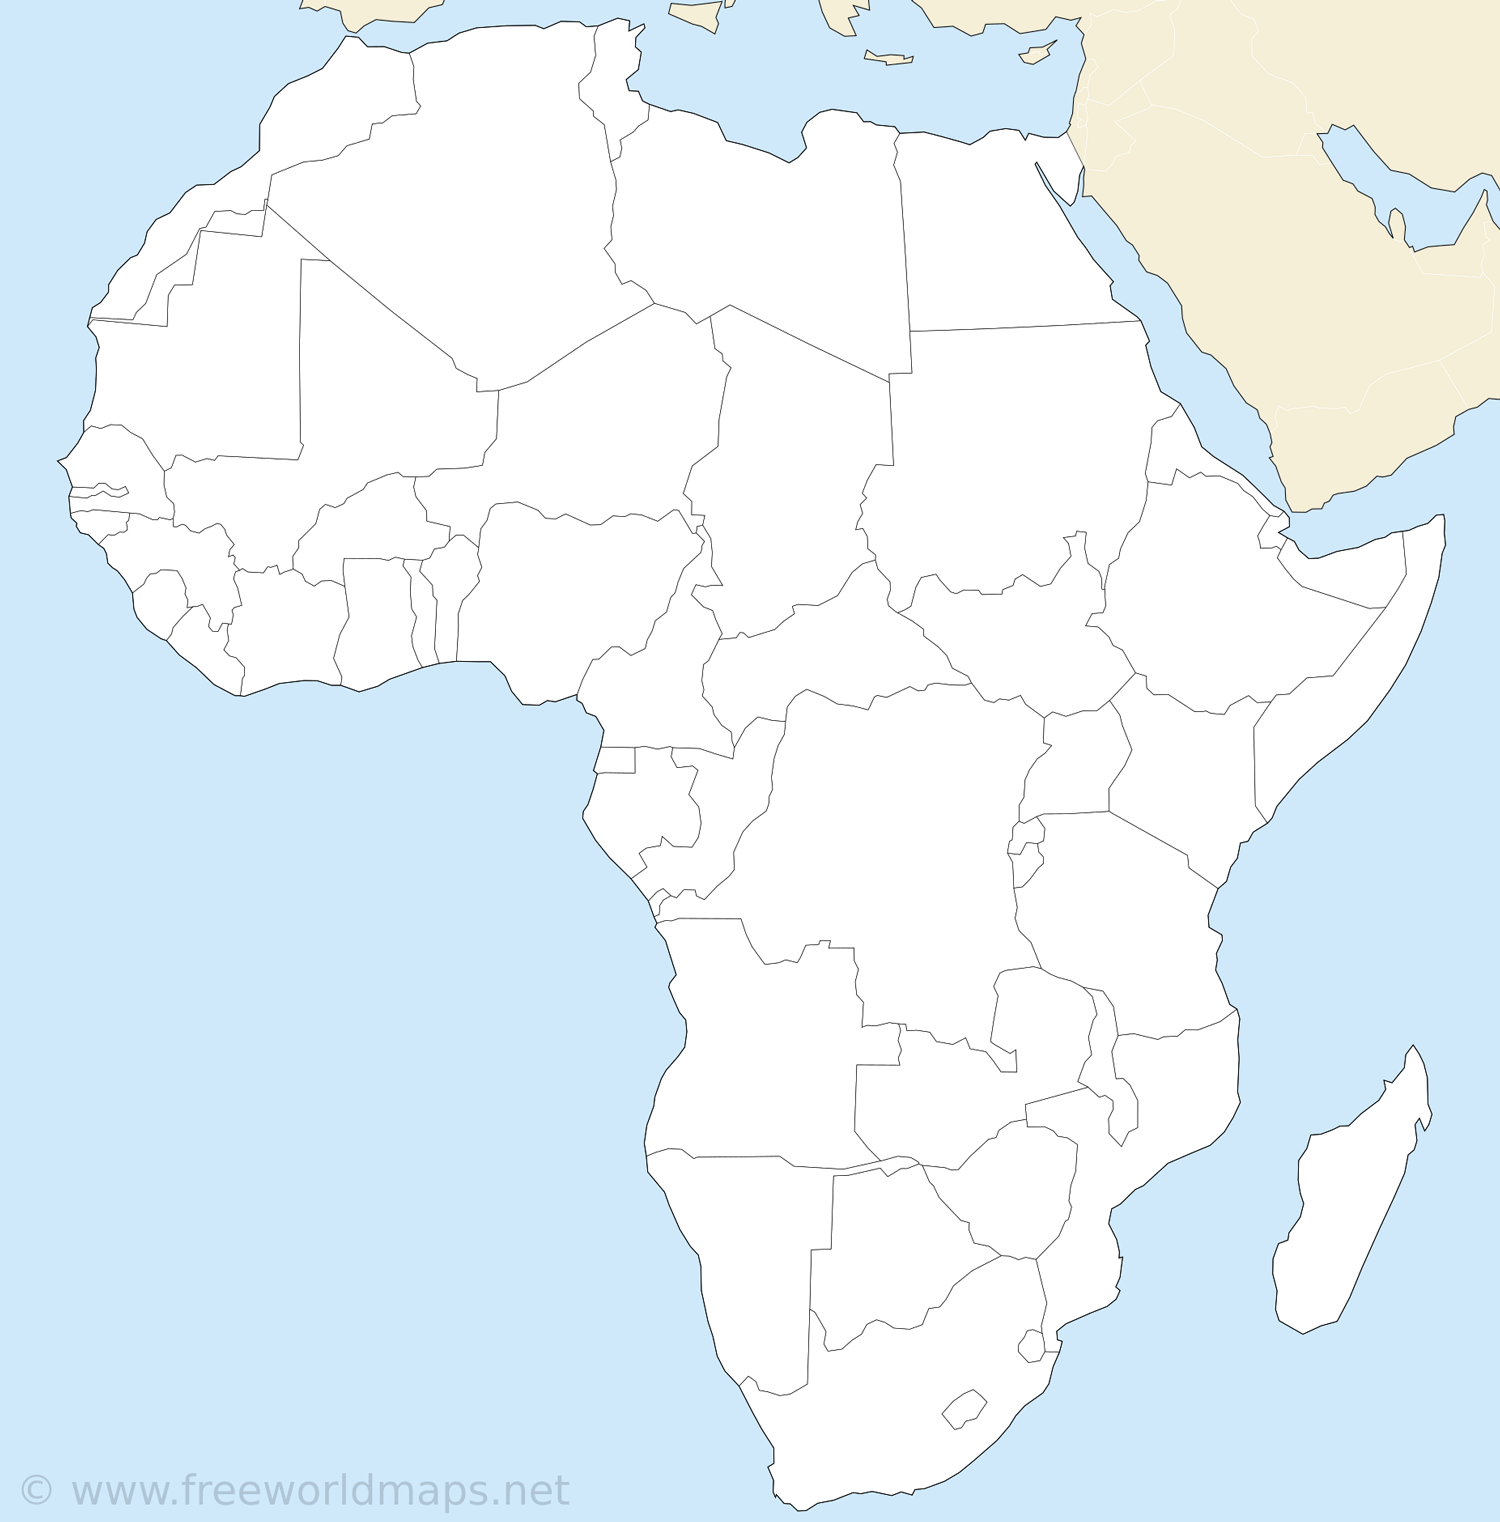 Africa printable maps by Freeworldmapsnet